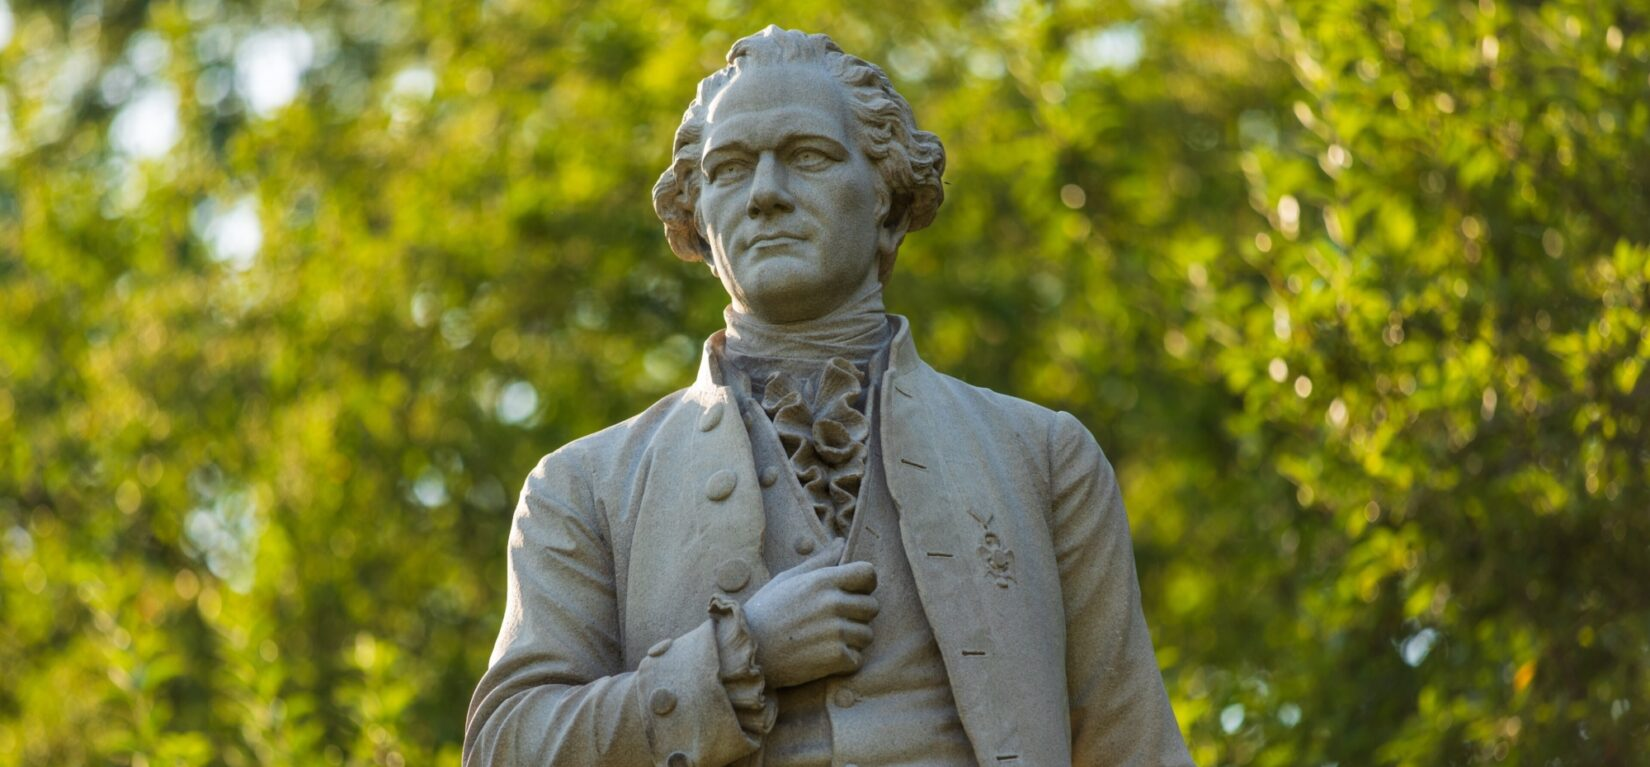 Close-up shot of the statue showing Hamilton in a frock coat